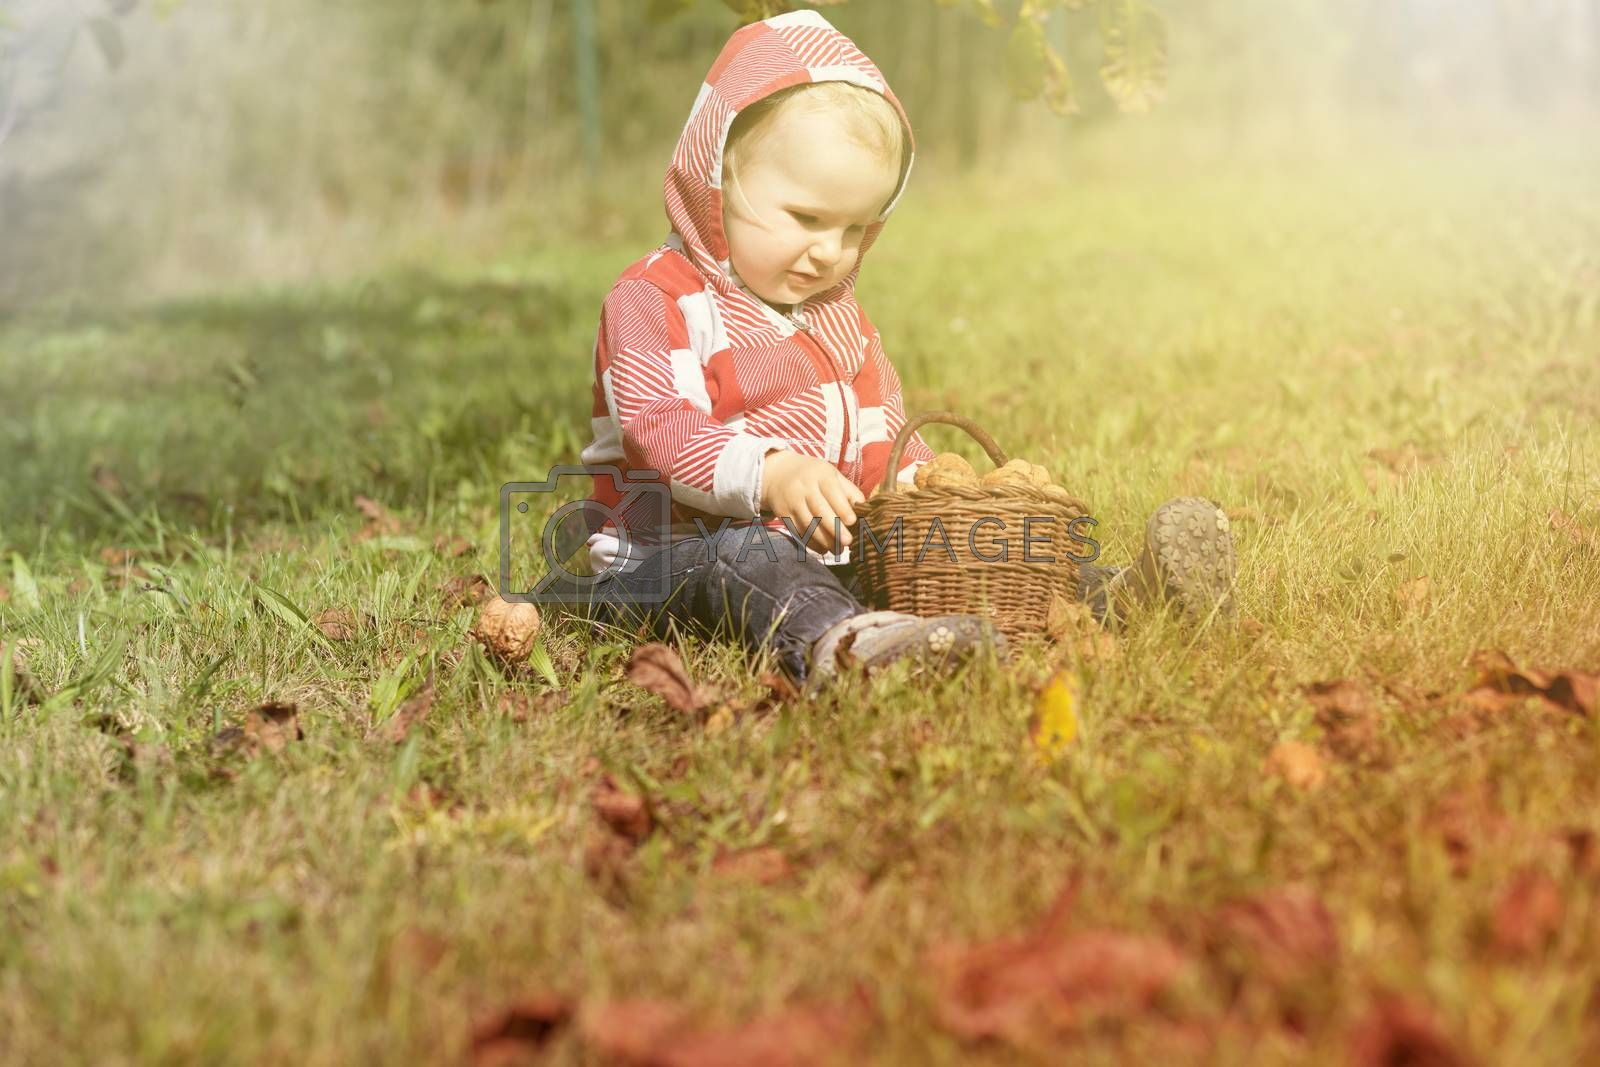 Portrait of cute baby boy sitting with handmade wicker basket full of walnuts. Photo in autumn colors design.